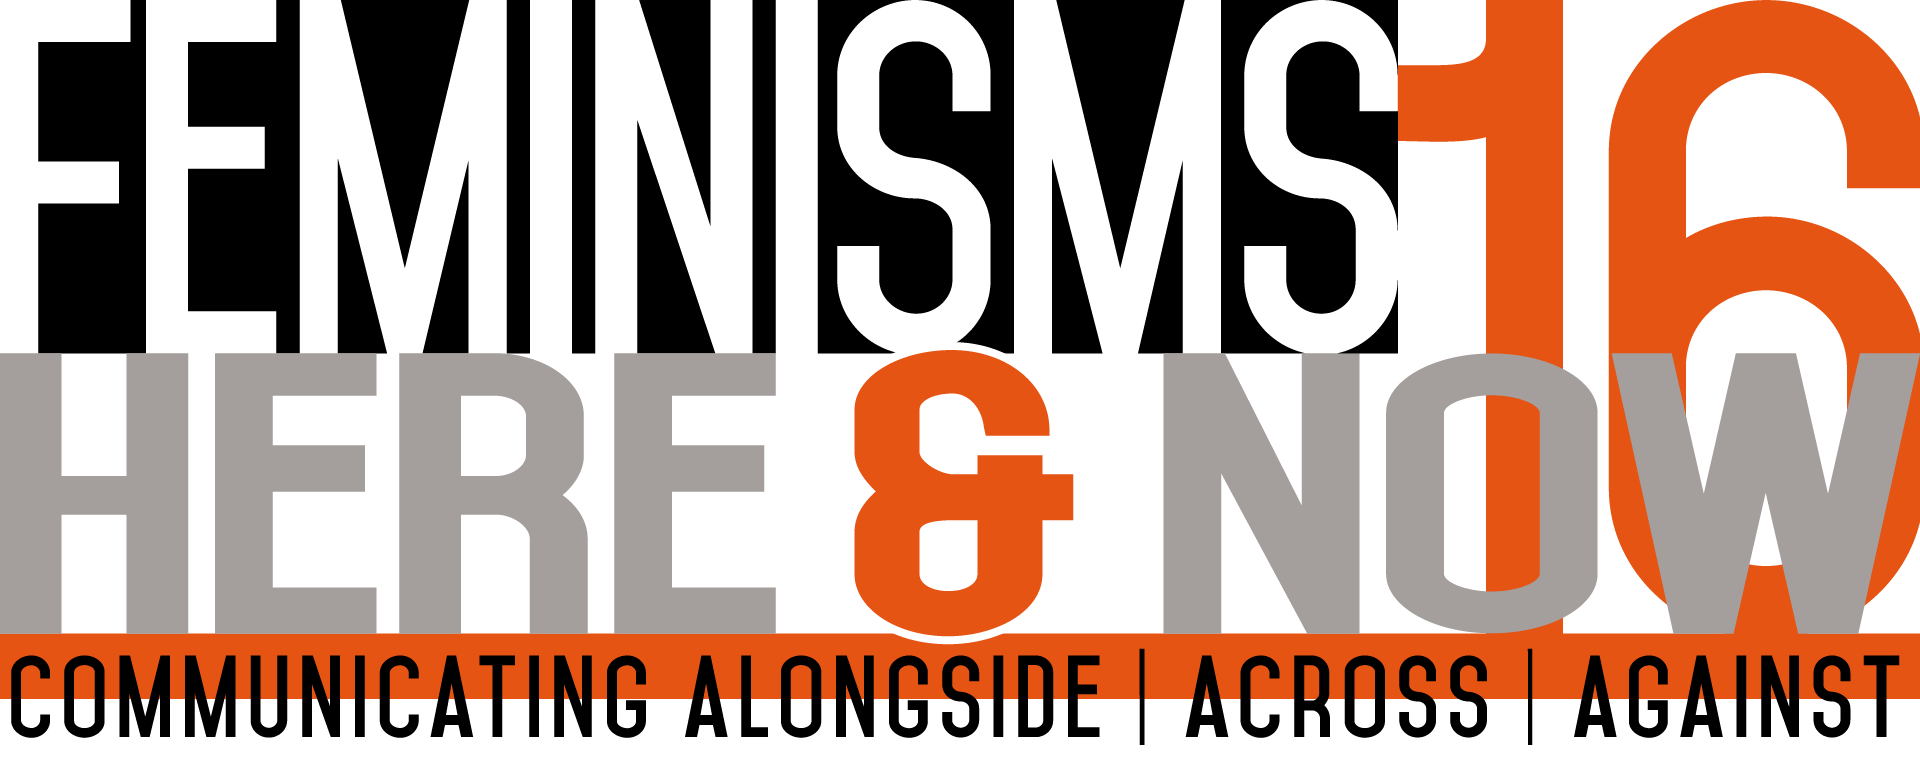 Feminisms Here and Now Conference: 2016